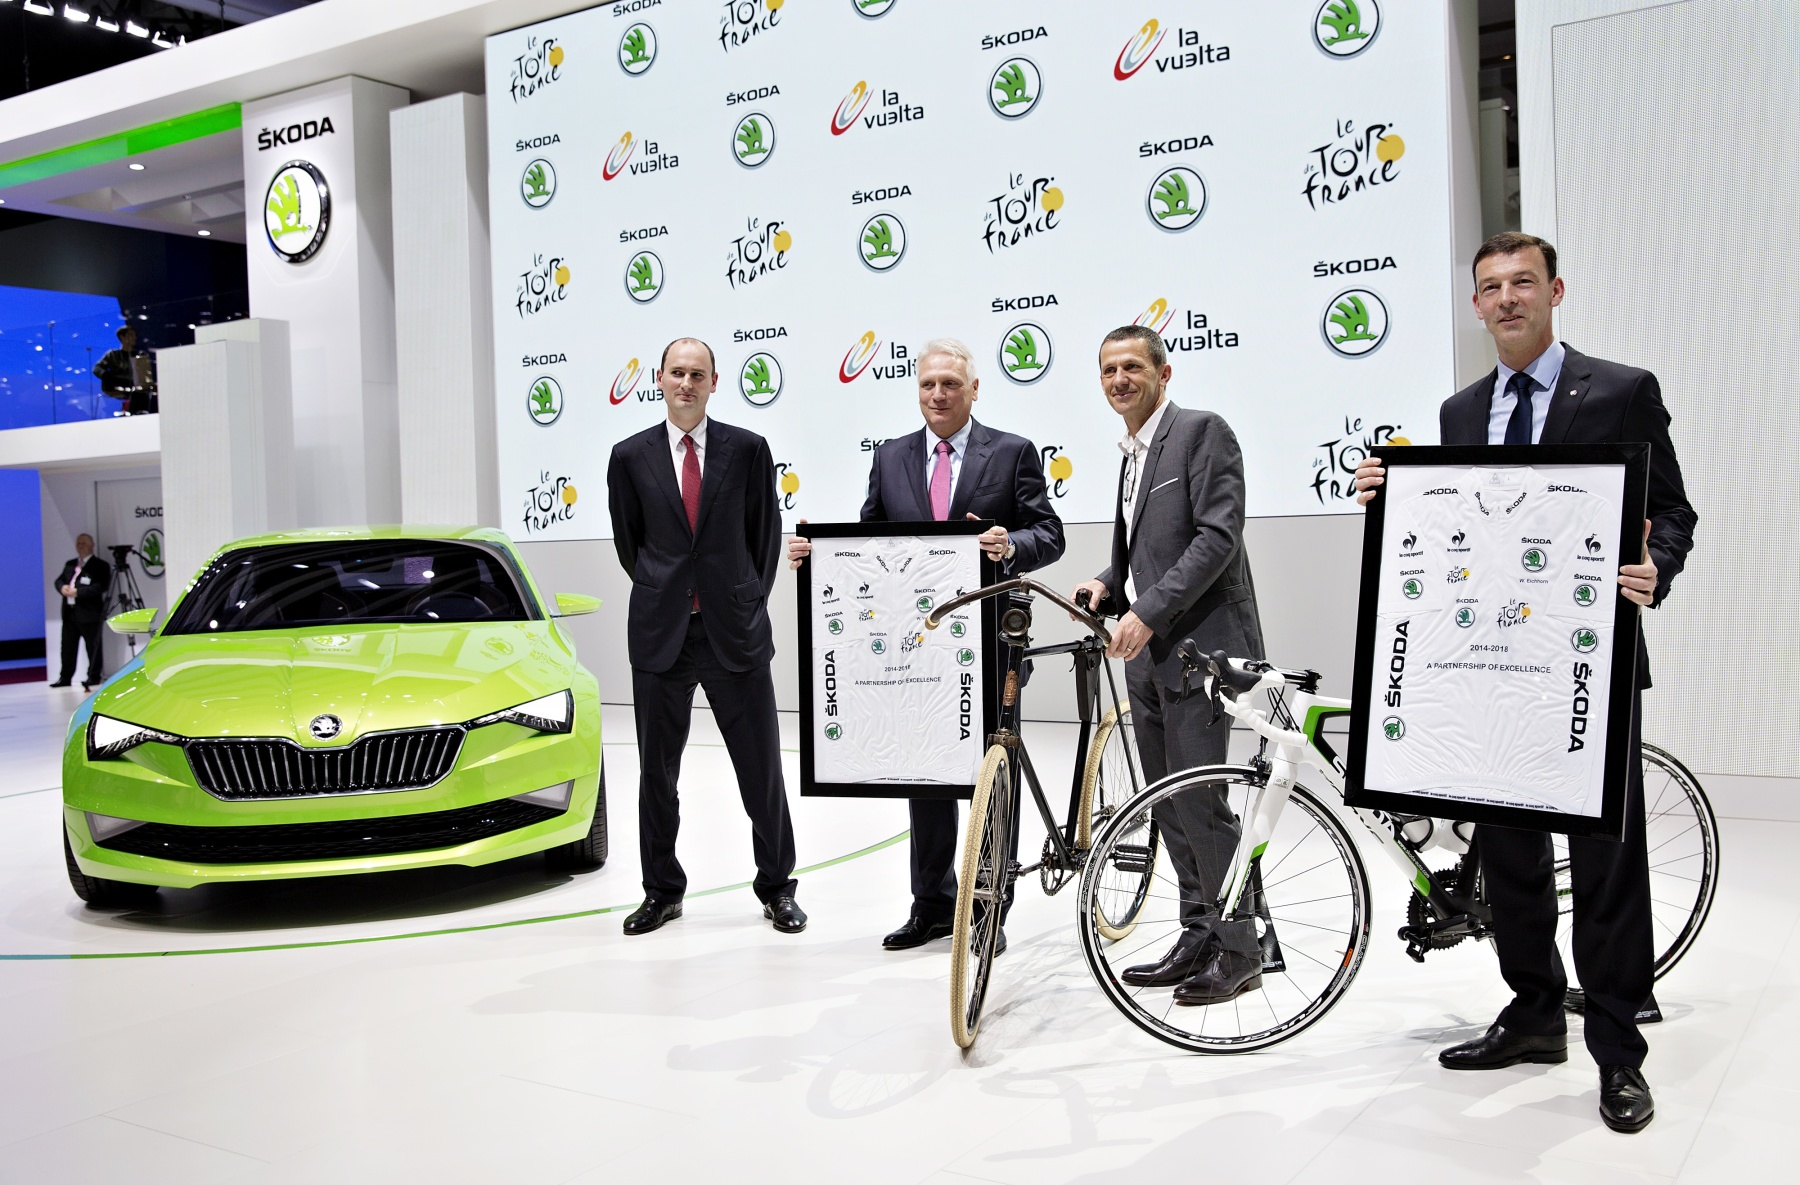 140304 SKODA - official partner Tour de France till 2018 002